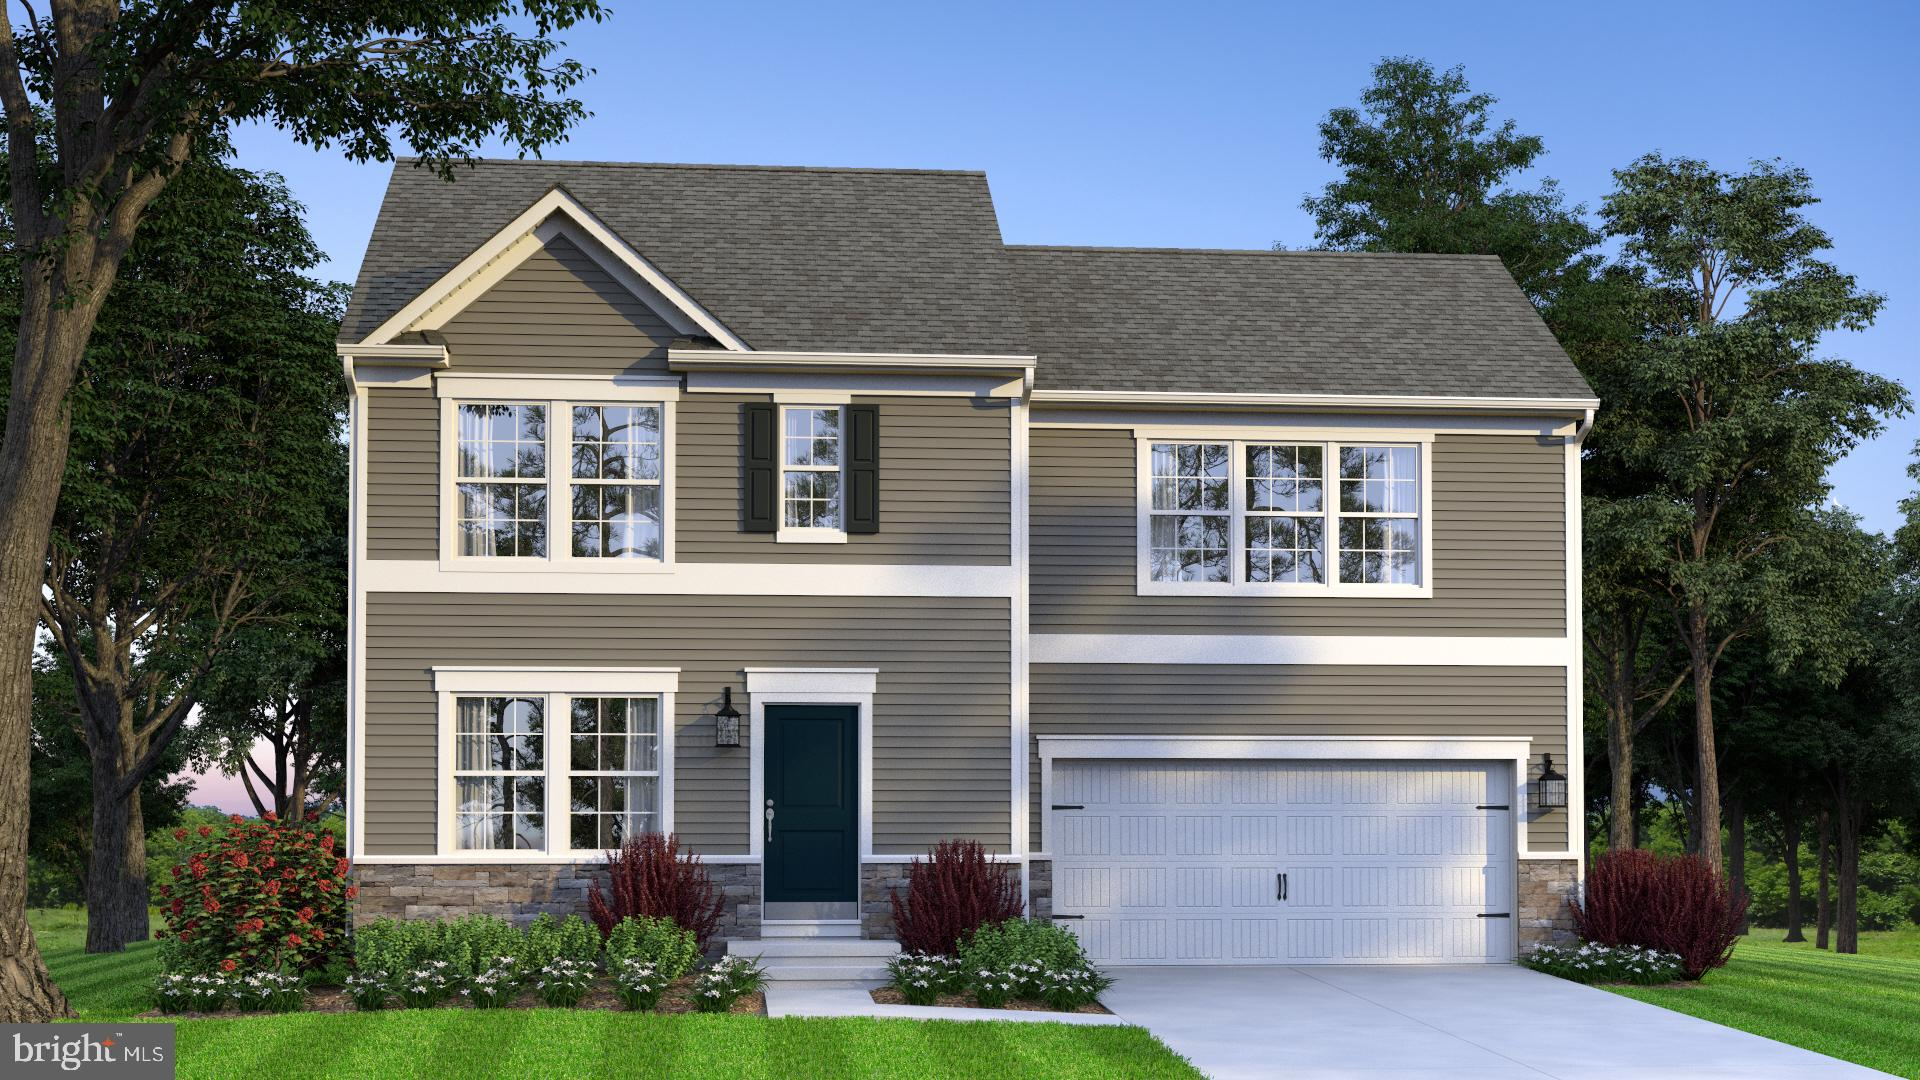 Opal Model offered by Gemcraft Homes. Two-Story Single-family home with 3 BR/2.5 BA, 1440 sq ft., w/